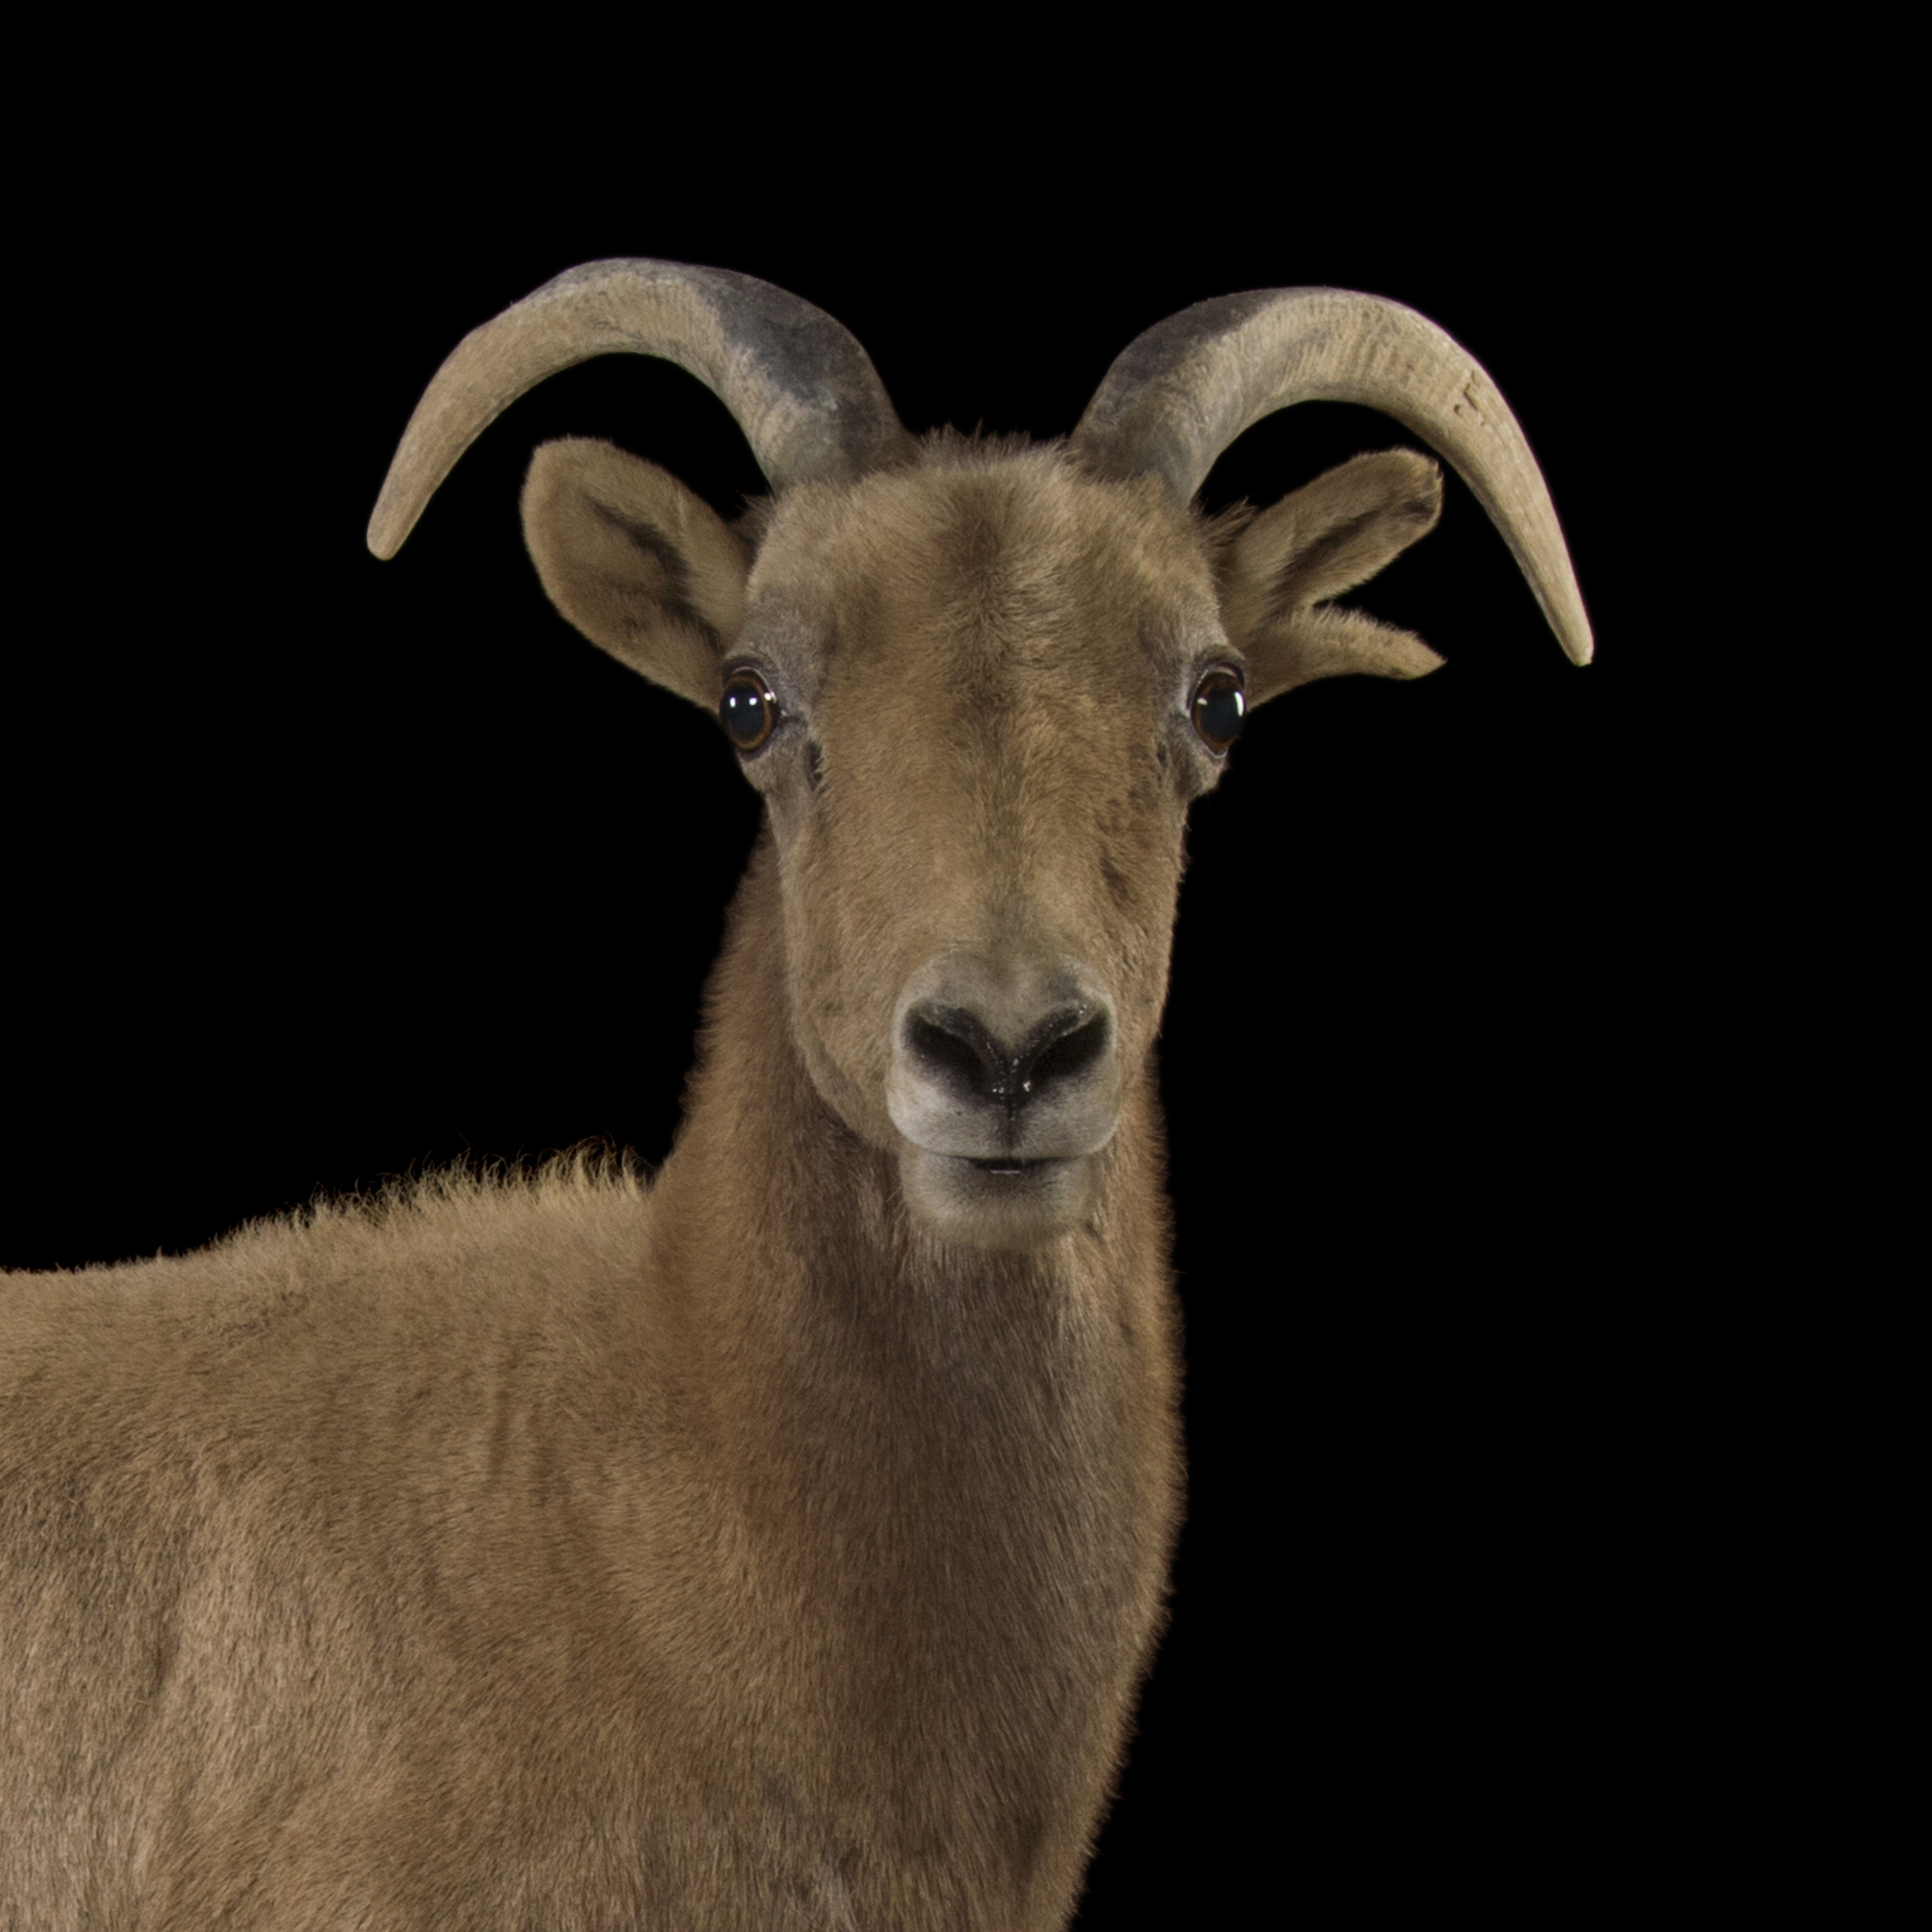 Bighorn sheep photo